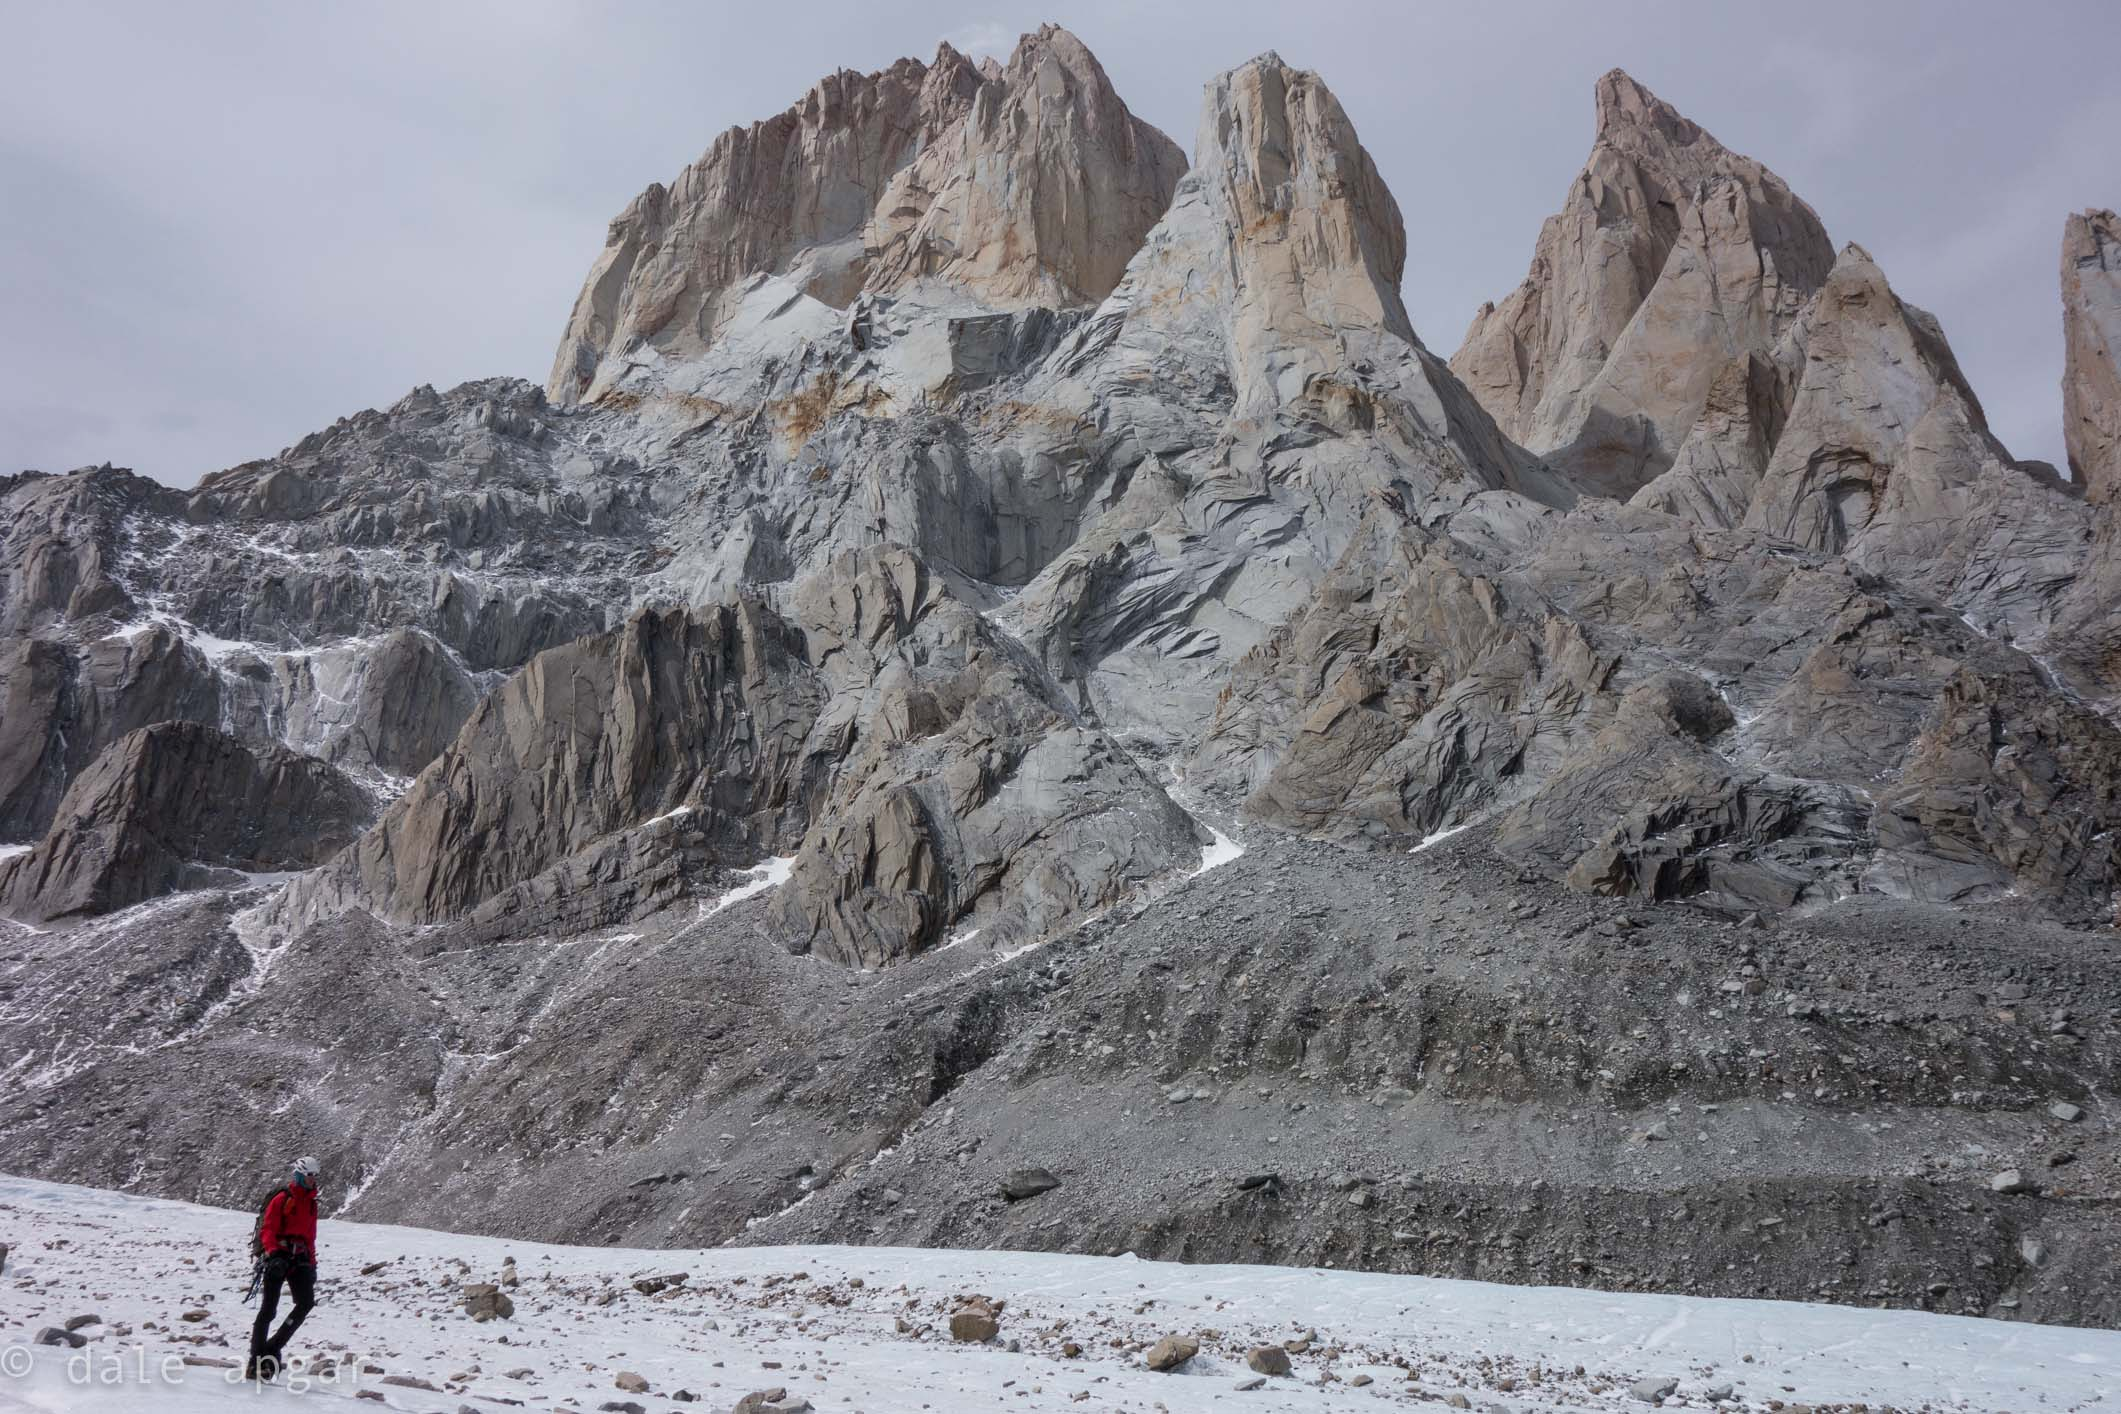 More imagery from the Torre Glacier